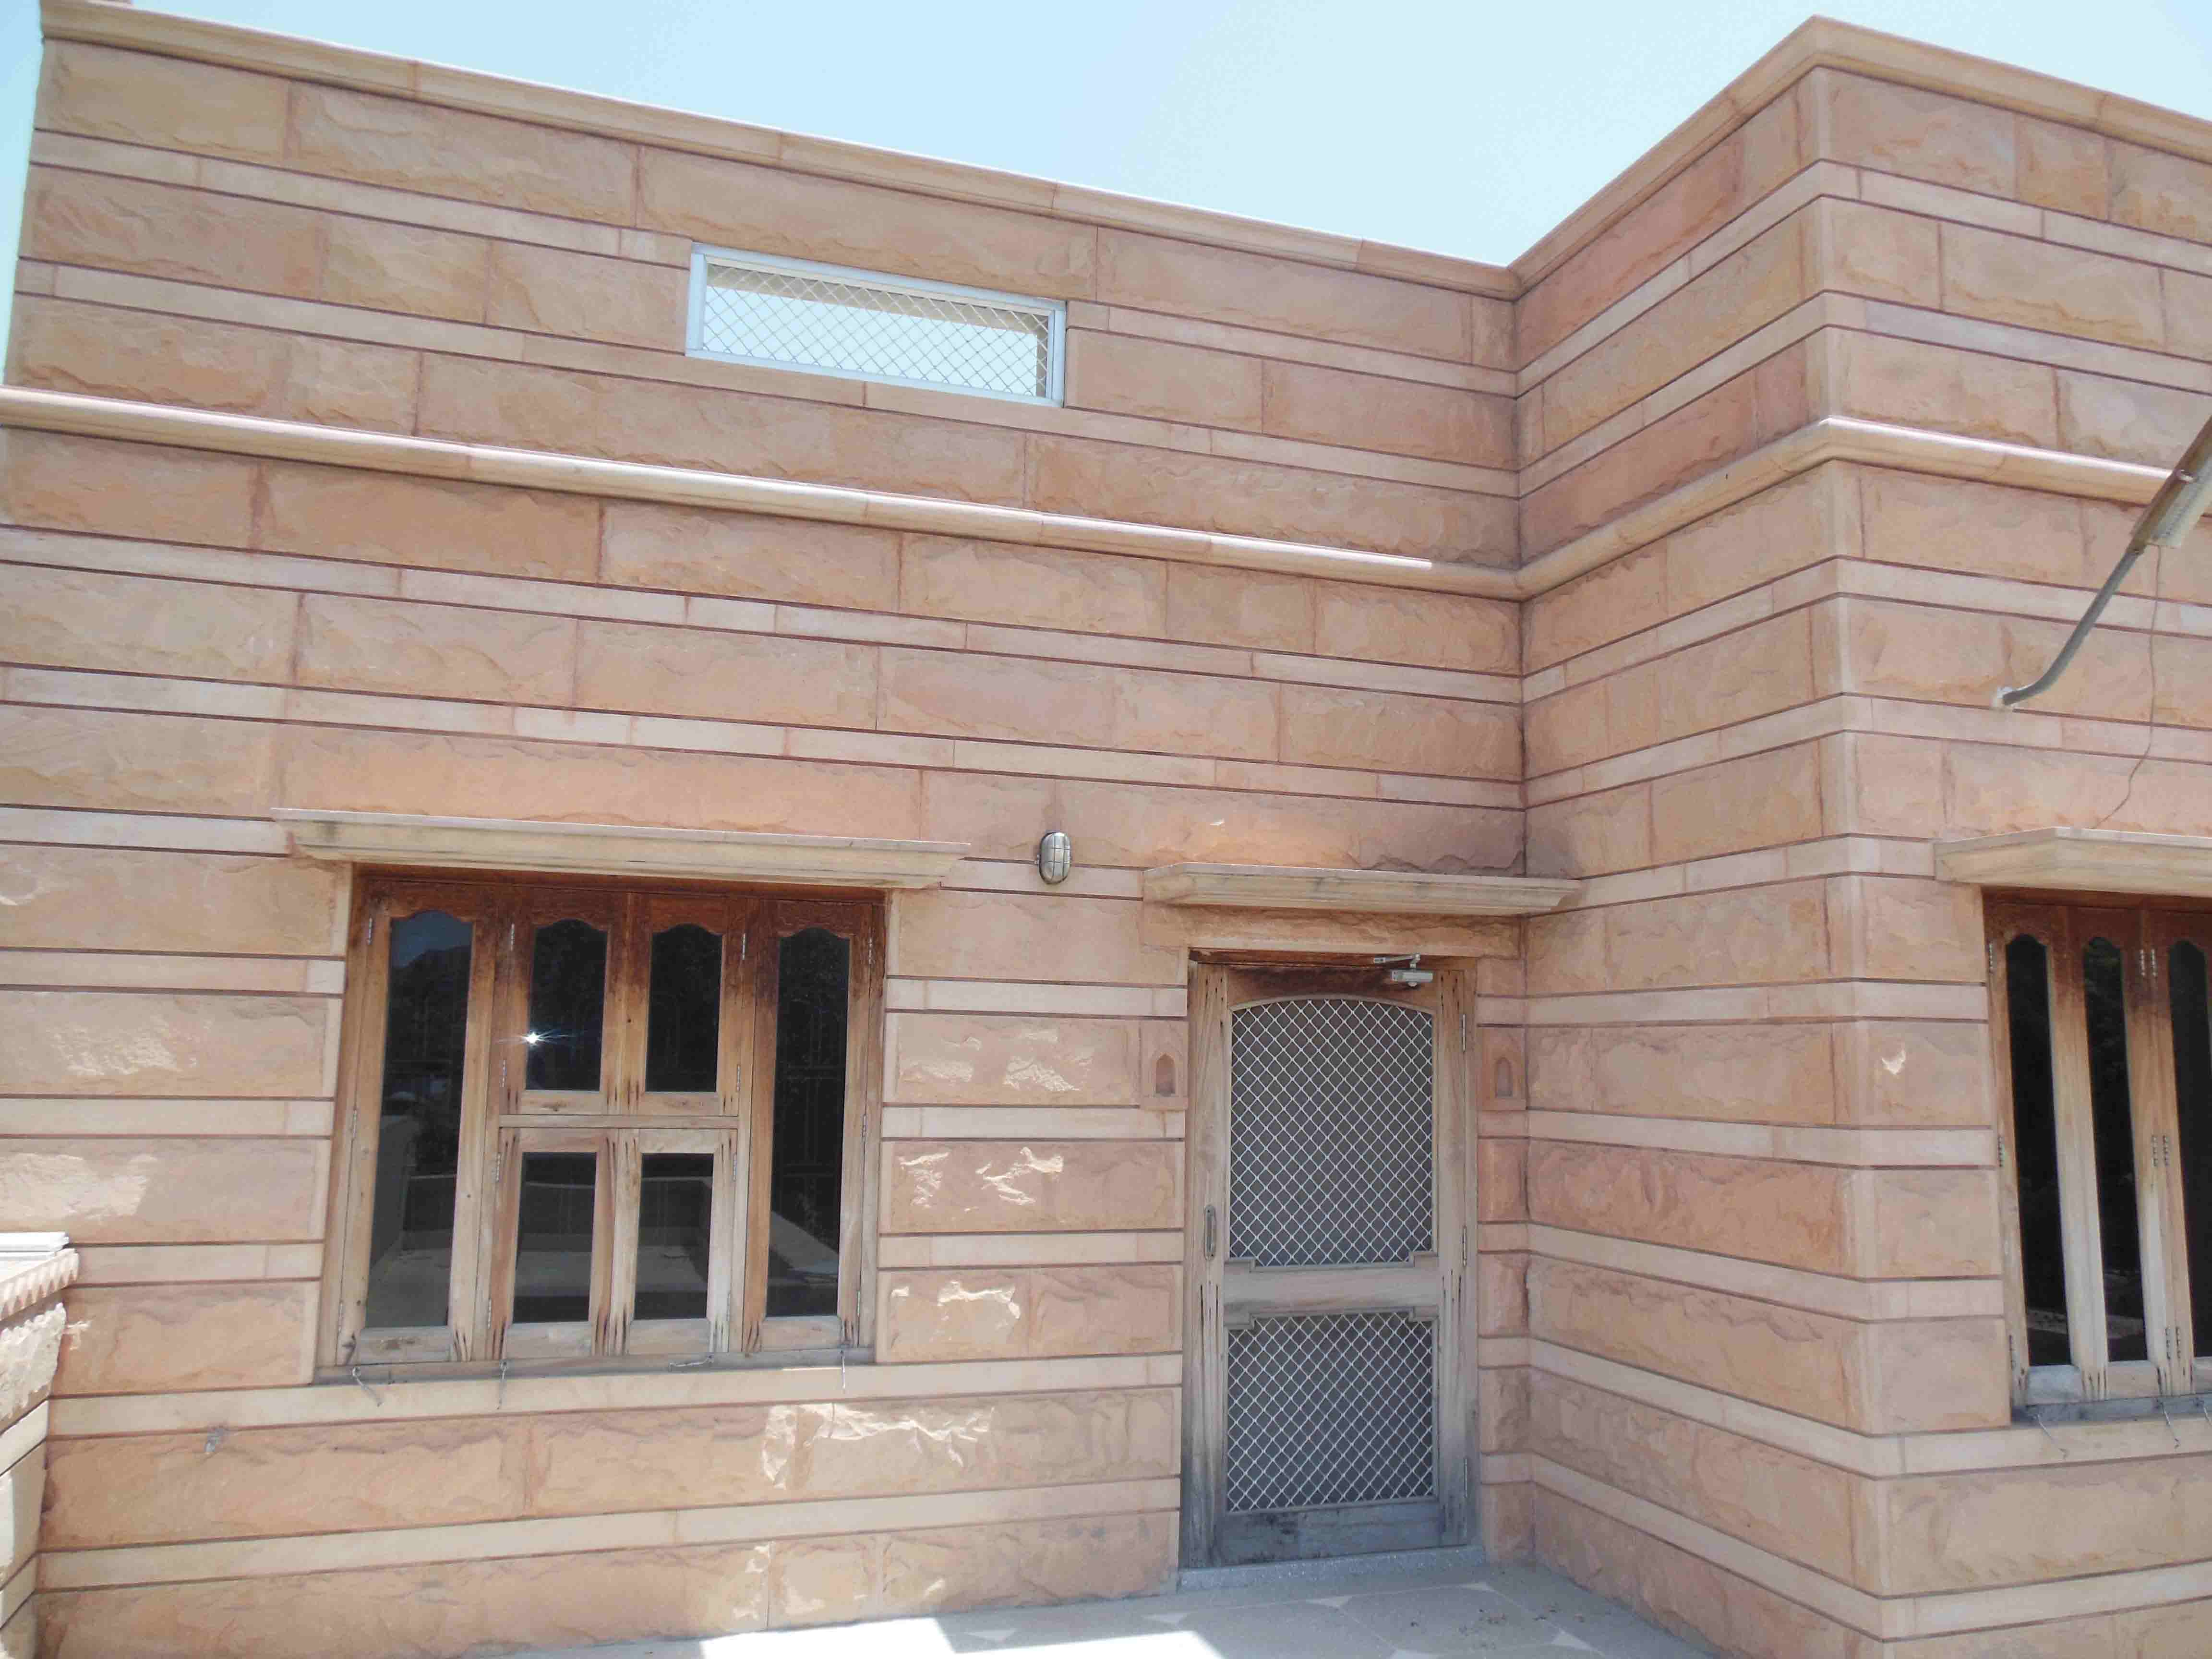 Groovy Top 1 Jodhpur Sandstone Guide Chemical Physical Properties Largest Home Design Picture Inspirations Pitcheantrous